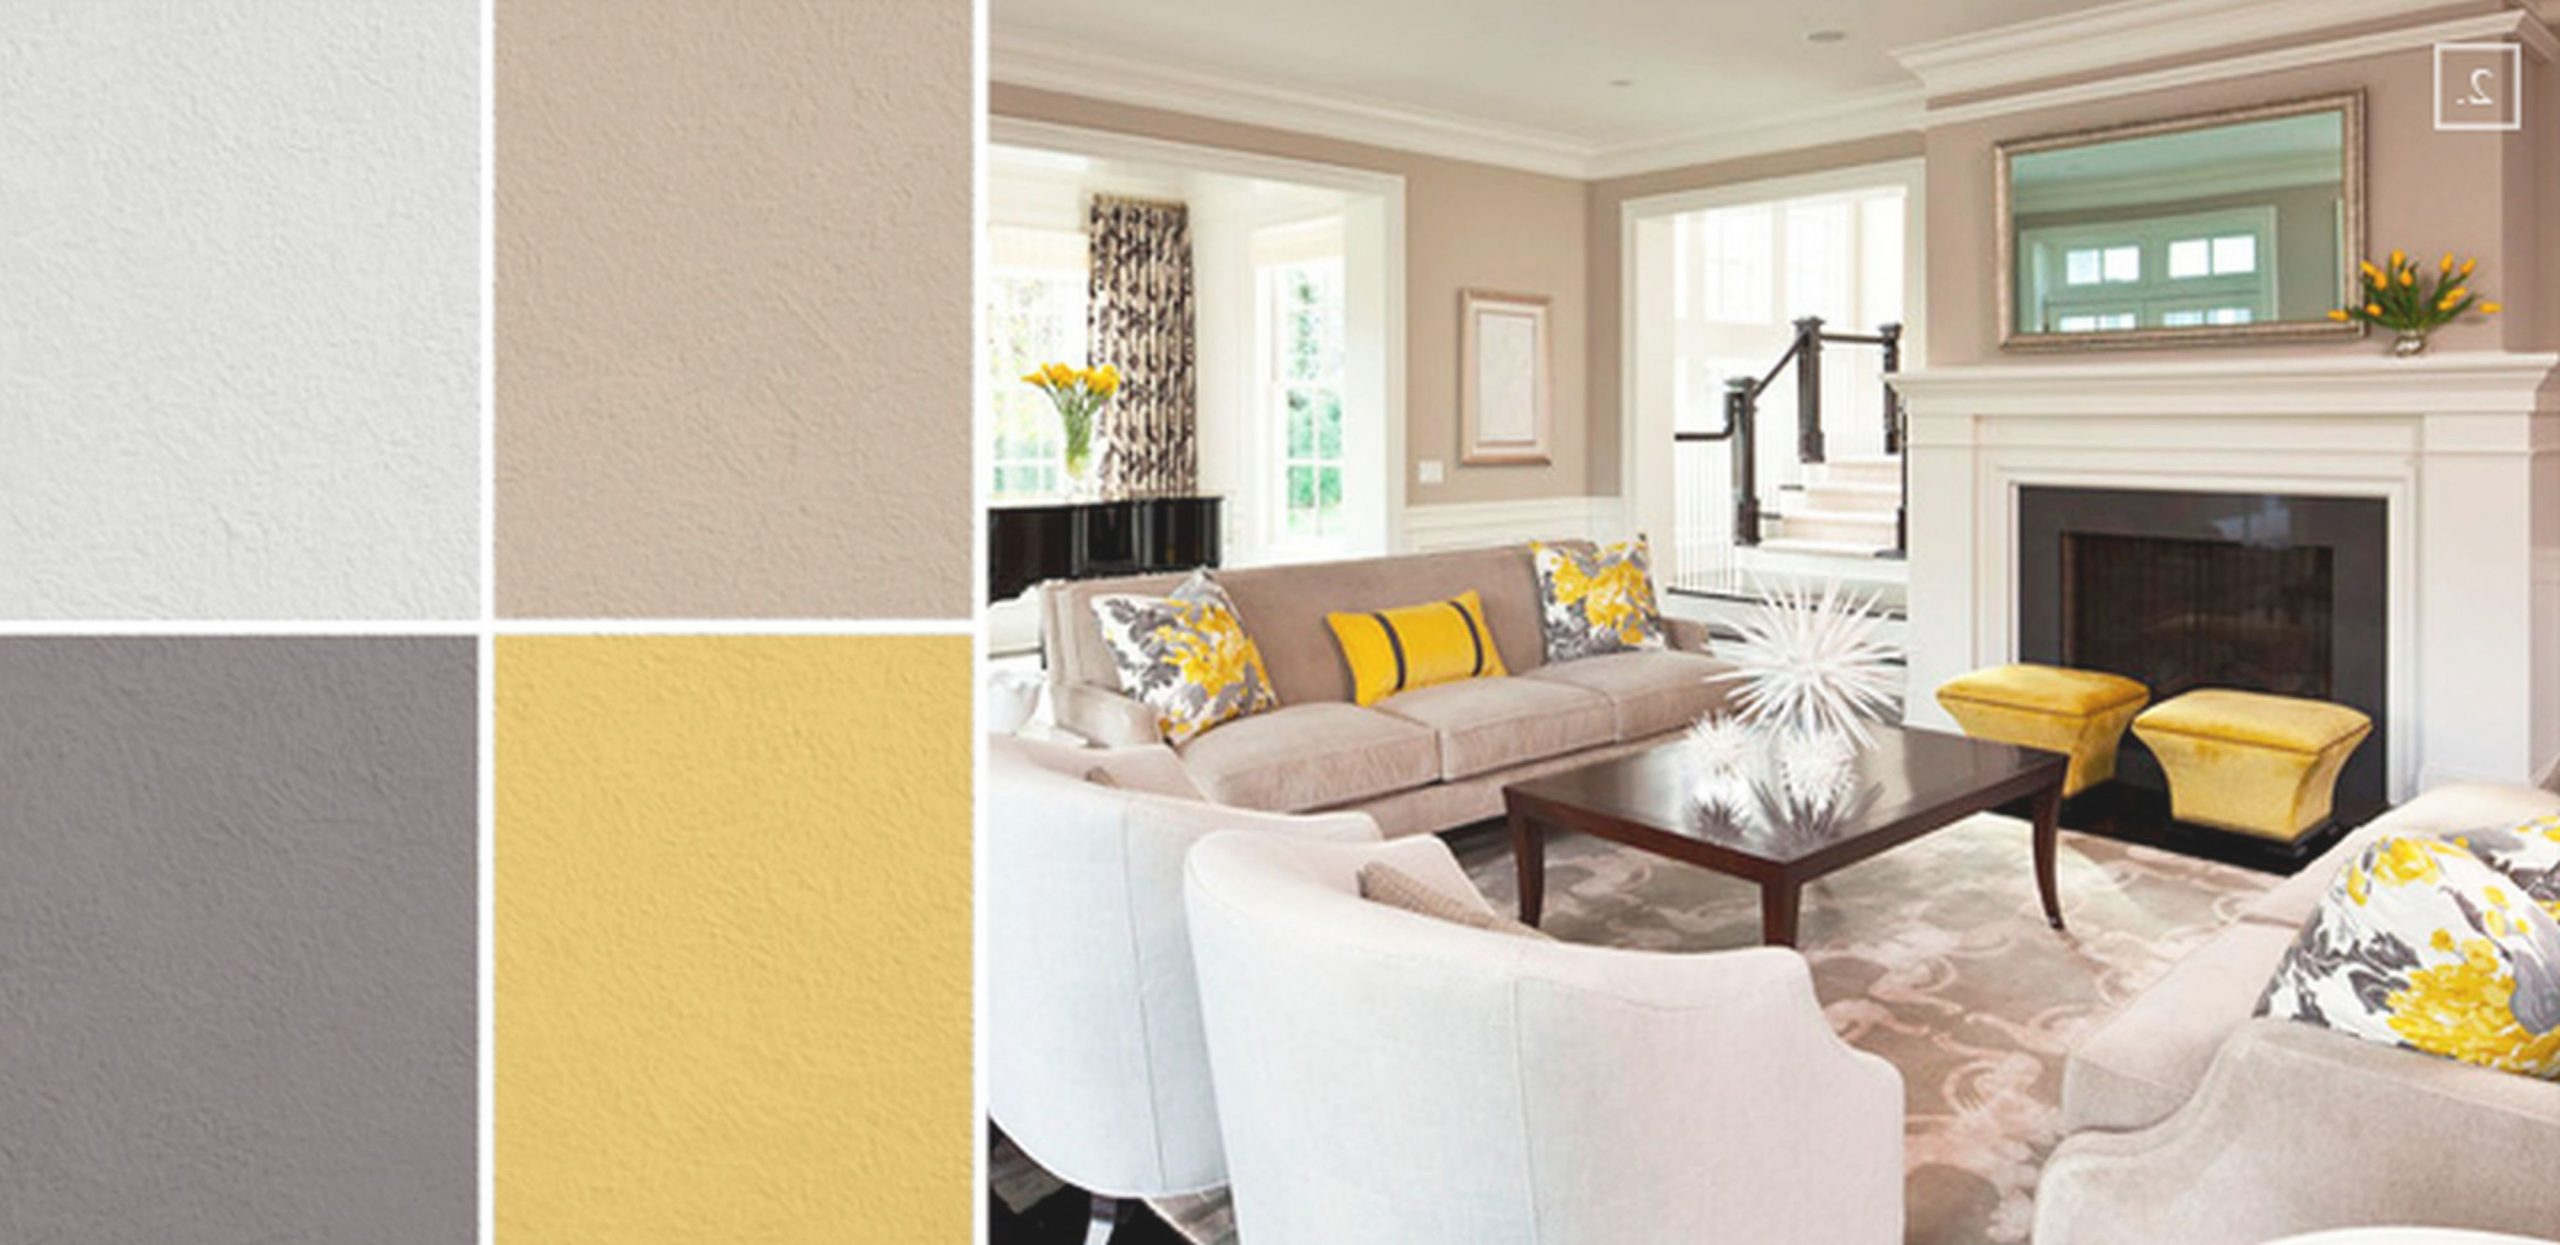 35 Cozy Yellow Living Rooms Ideas That Provide The Perfect inside Yellow Walls Living Room Interior Decor